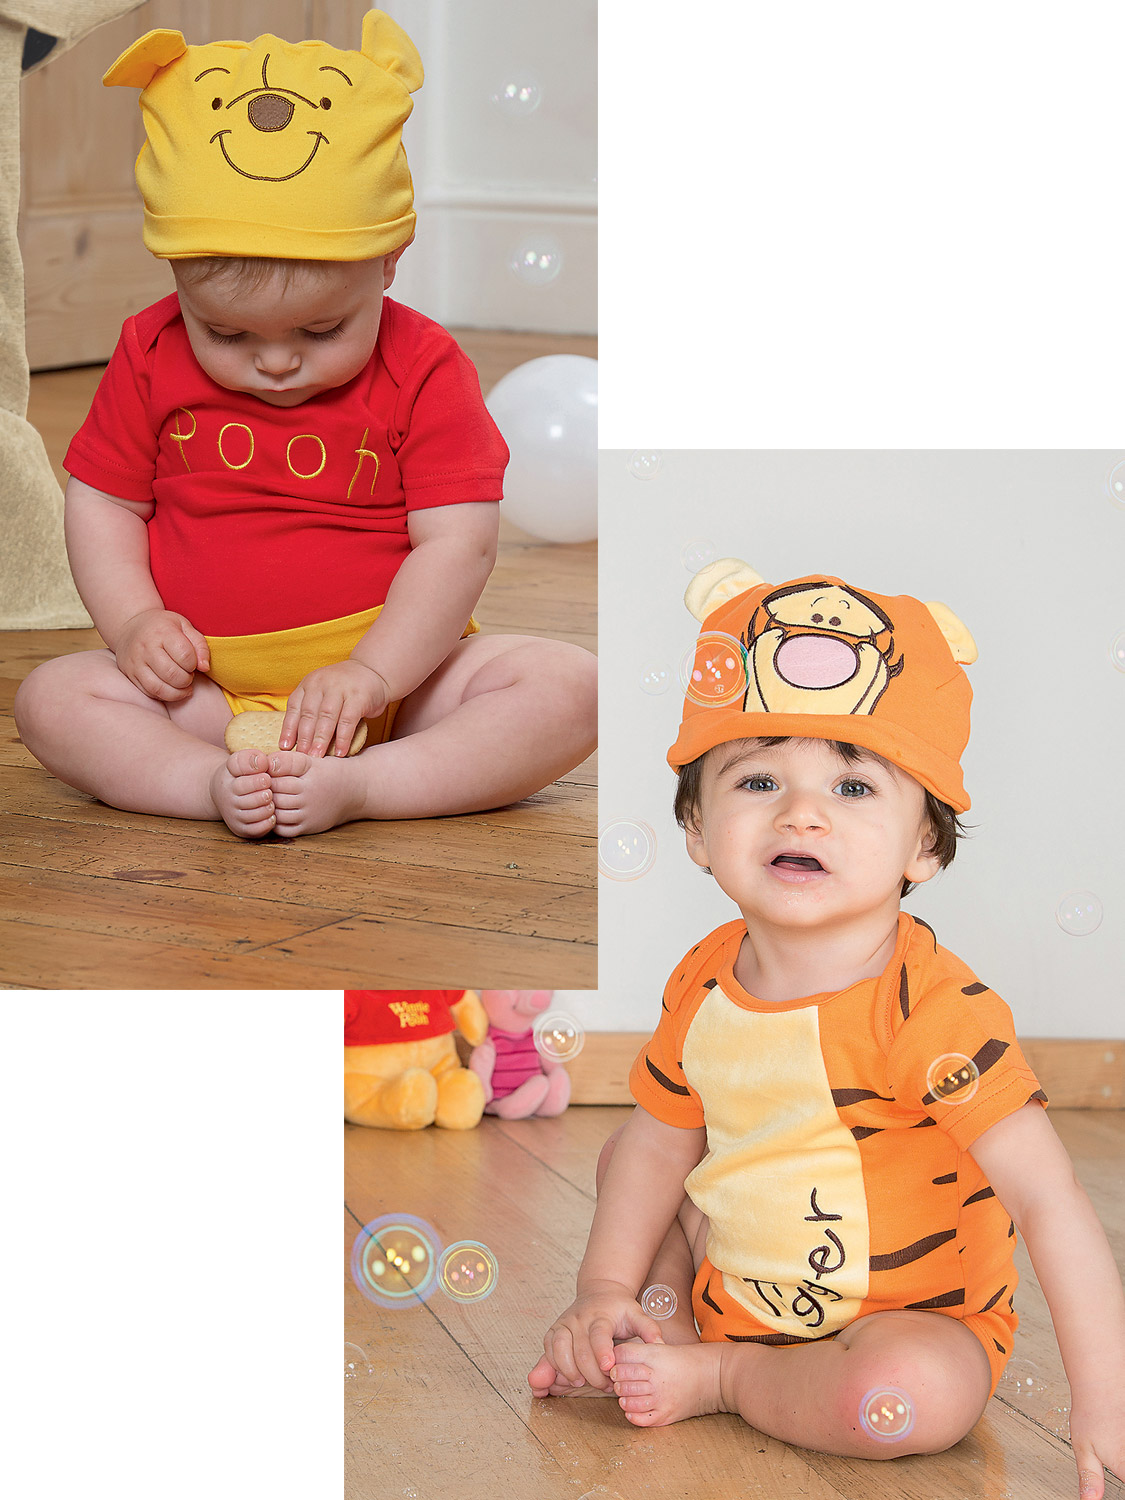 2ef3c7ec0300 Details about Disney Baby Winnie the Pooh Bodysuit + Hood Outfit Toddler  Fancy Dress Costume